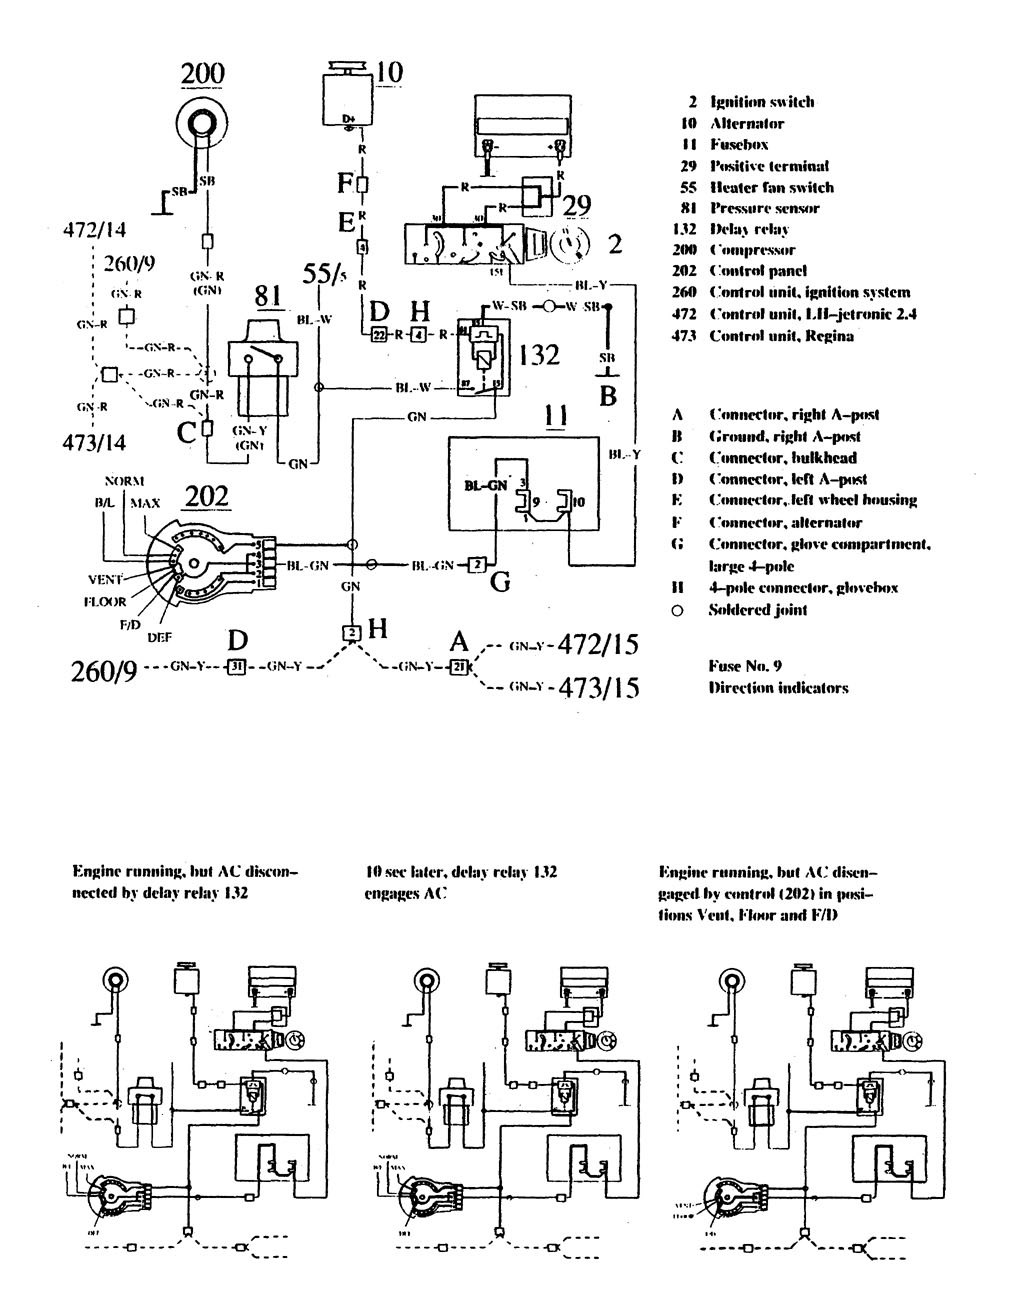 1990 Volvo 240 Alternator Wiring Diagram Trusted Schematics 1995 Wire Fuse Box 740 Diagrams Hvac Controls Carknowledge Transmission System